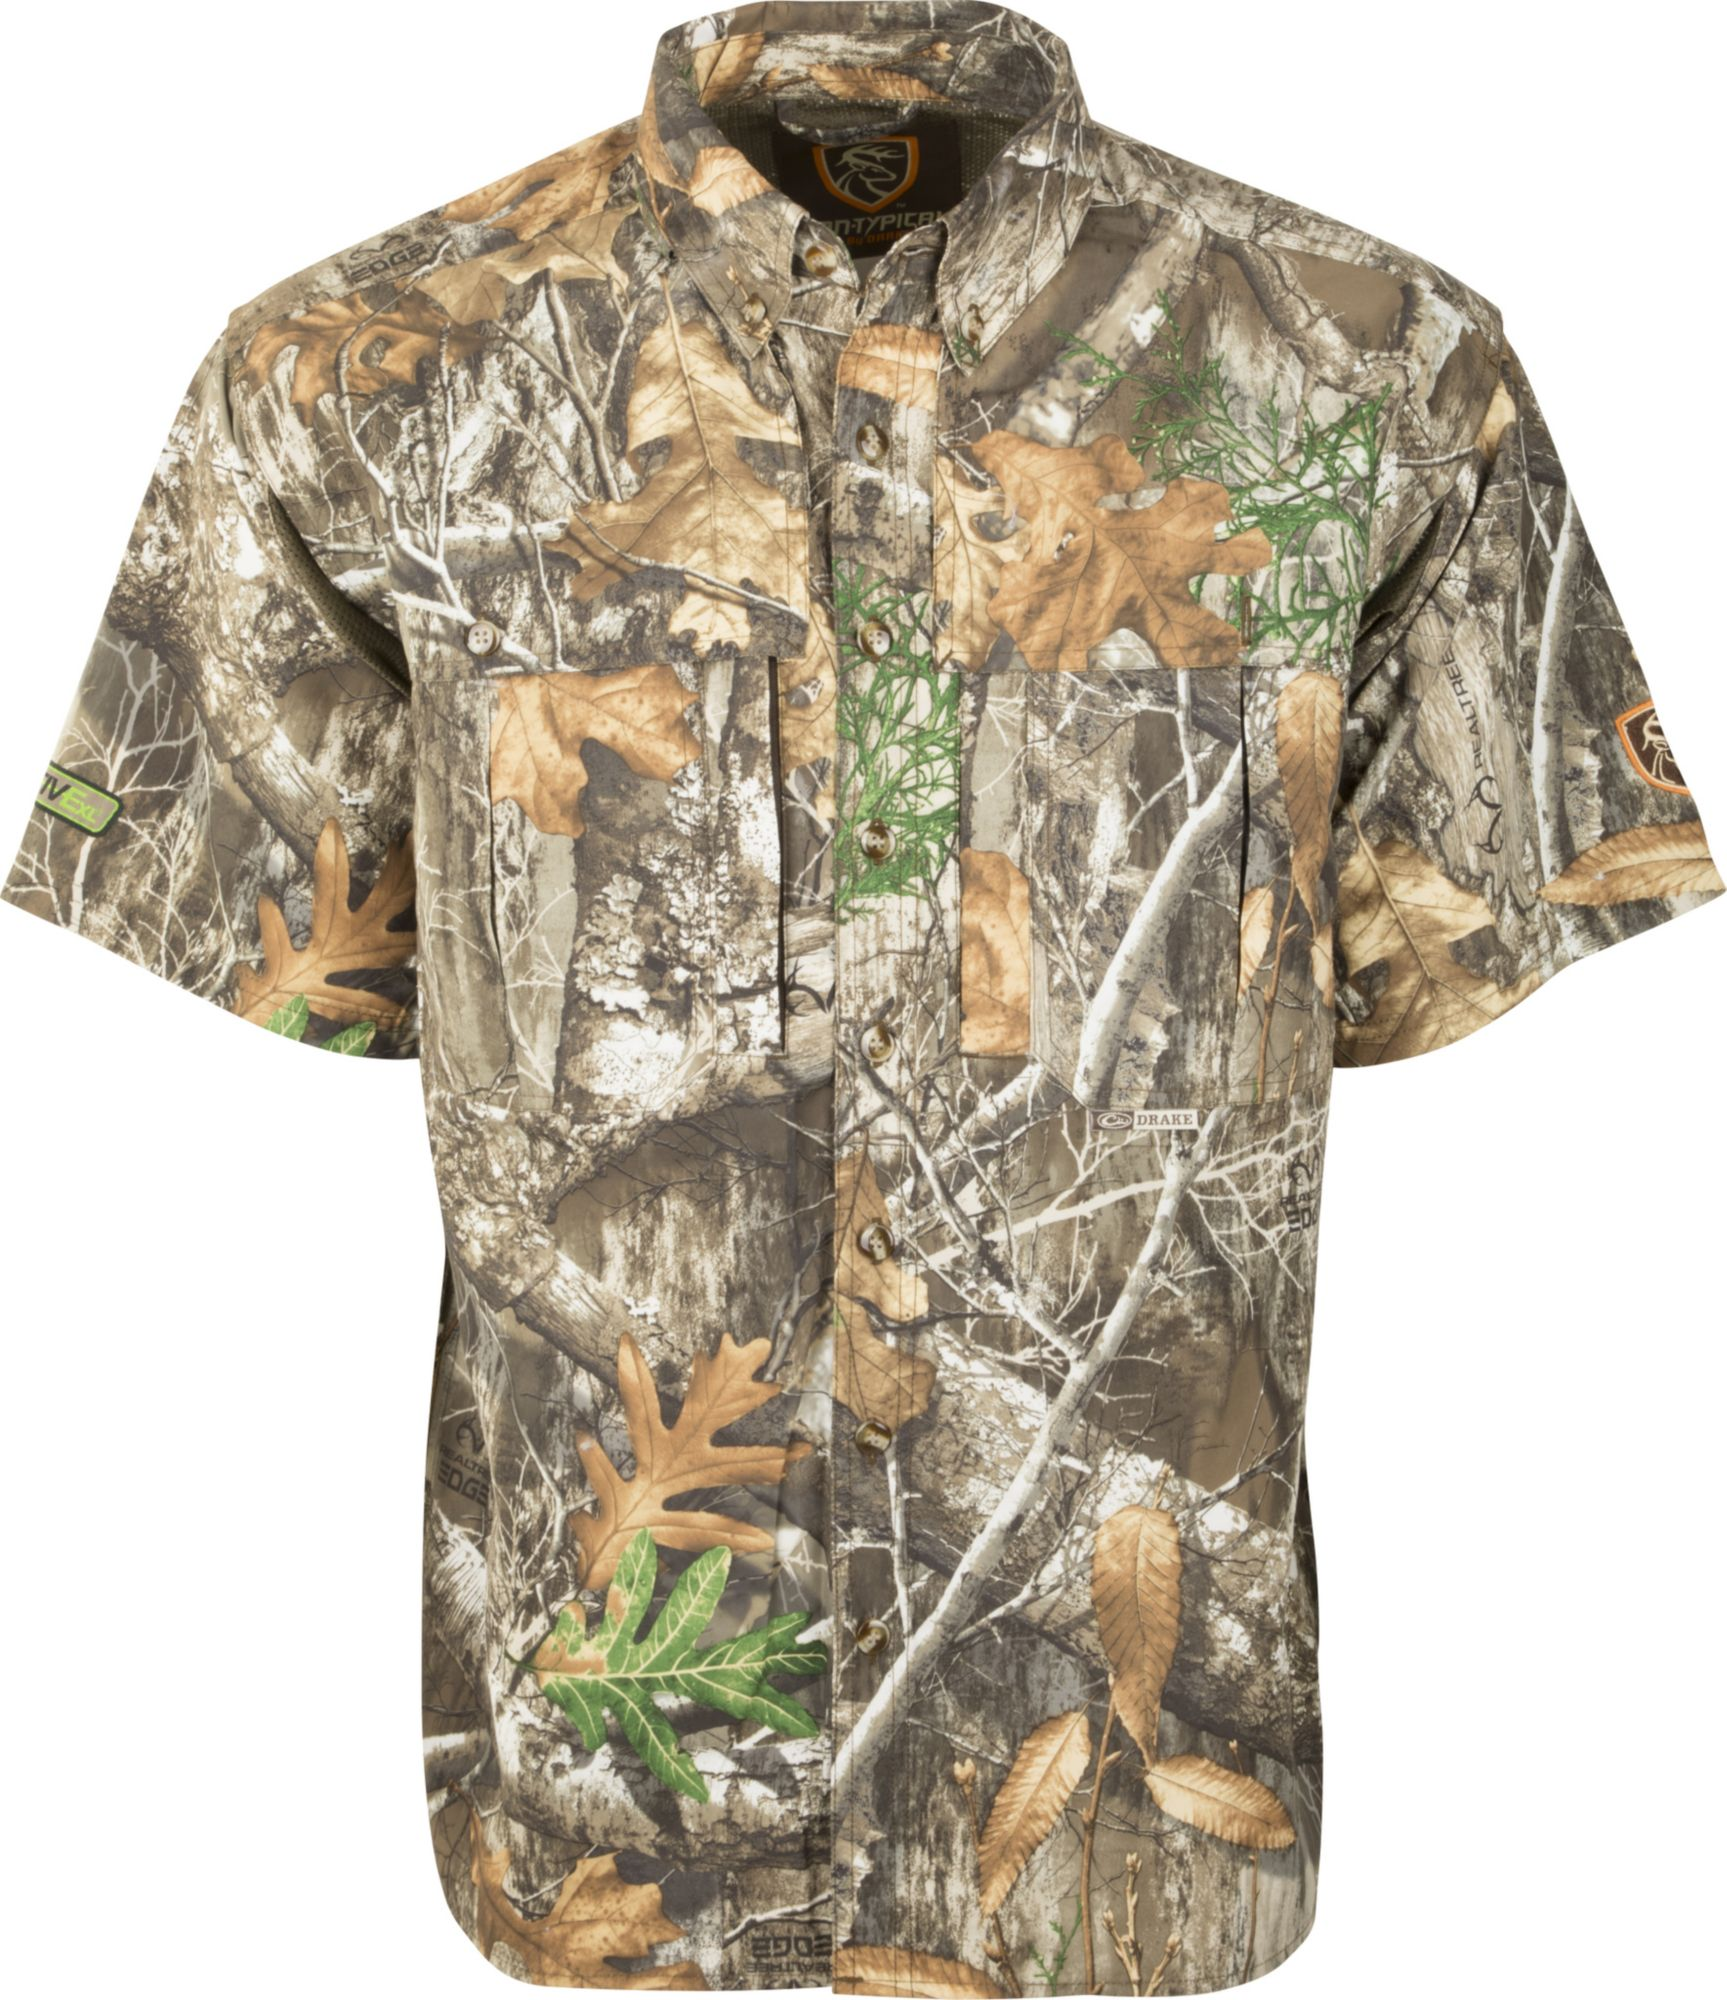 Drake Waterfowl Men's Non-Typical Dura-Lite Short Sleeve Shirt with Agion Active XL, Size: Small, Green thumbnail